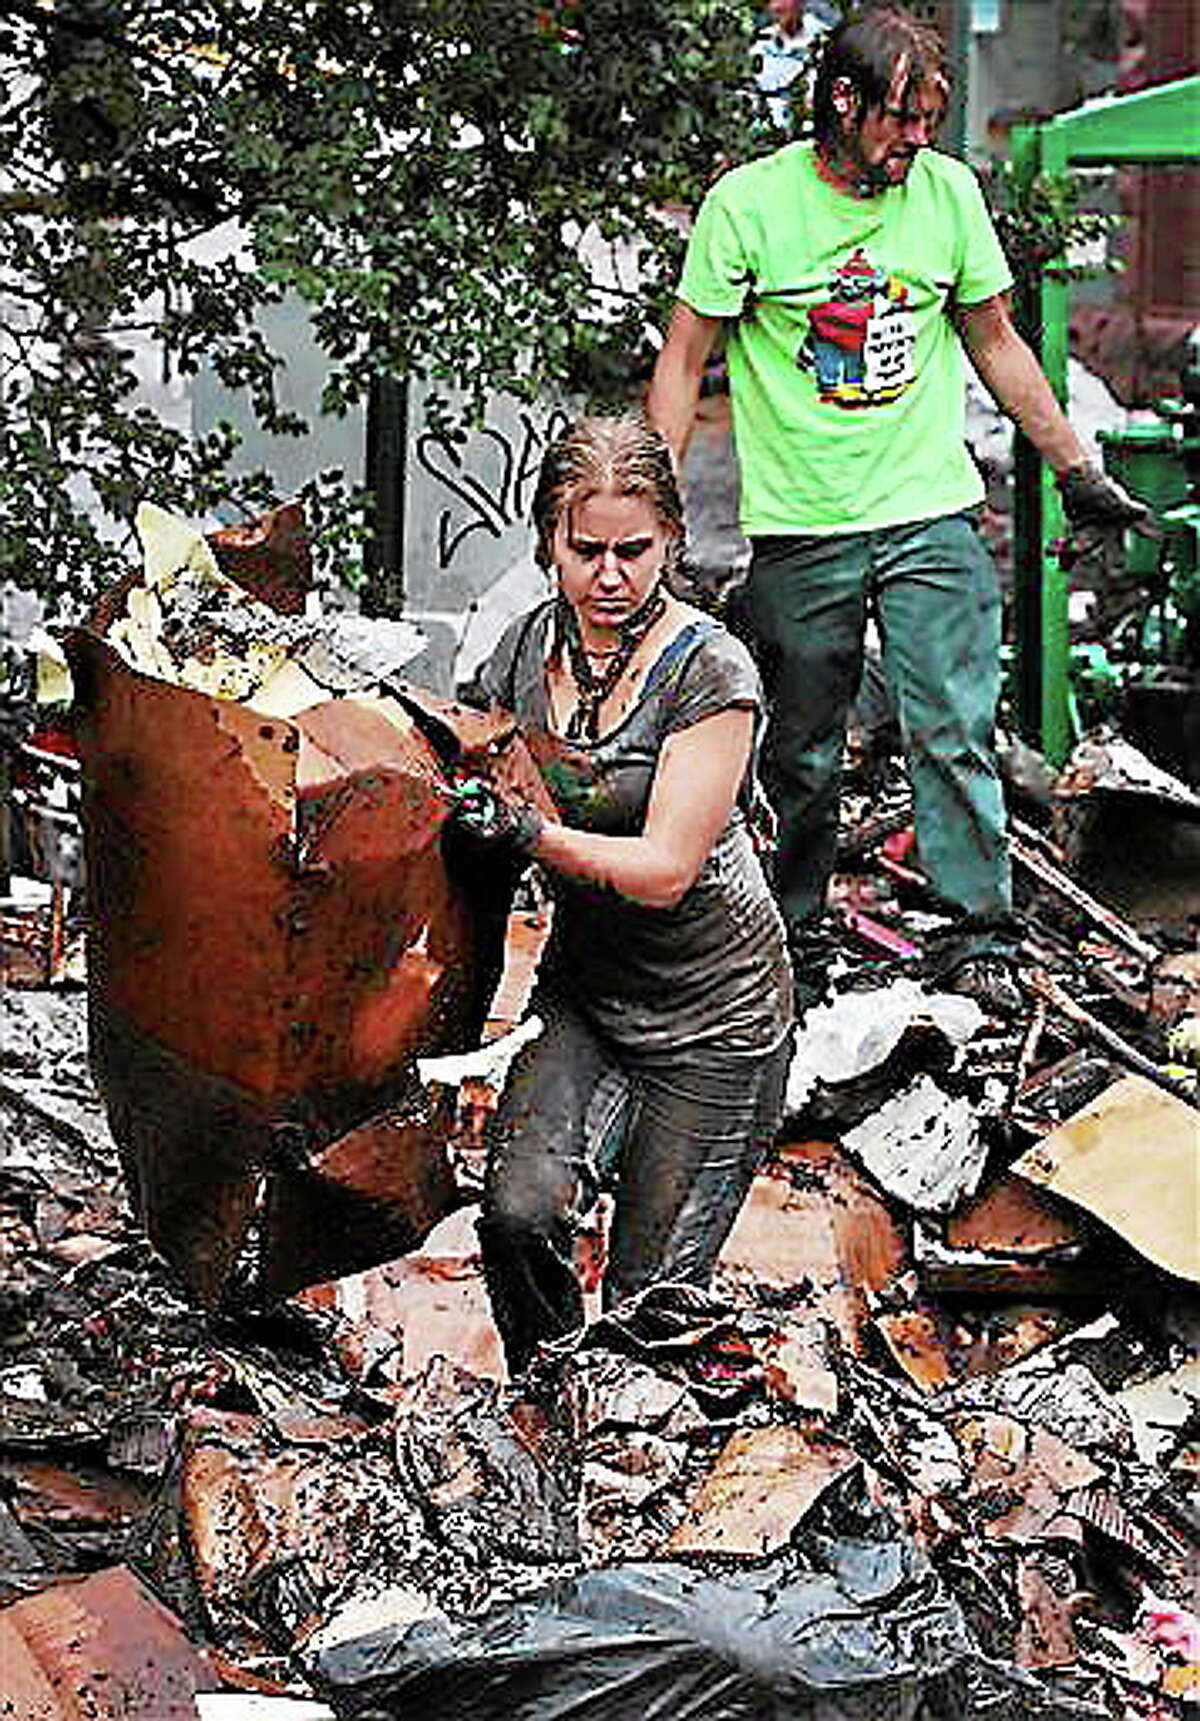 In the rain, Erin Dettweiler, center, works with other local volunteers to clear away tons of mud-caked debris deposited in a recent flash flood, in Manitou Springs, Colo., Tuesday Aug. 13, 2013. Daily rainstorms have prompted new flash flood worries in Manitou Springs, which lies in the drainage of the area burned in last year's Waldo Canyon Fire. A 17-year-old girl drowned Monday after she was caught in heavy rain in Colorado Springs as storms pounded a region still reeling from mudslides and flash flooding that killed one person in nearby Manitou Springs last week. (AP Photo/Brennan Linsley)